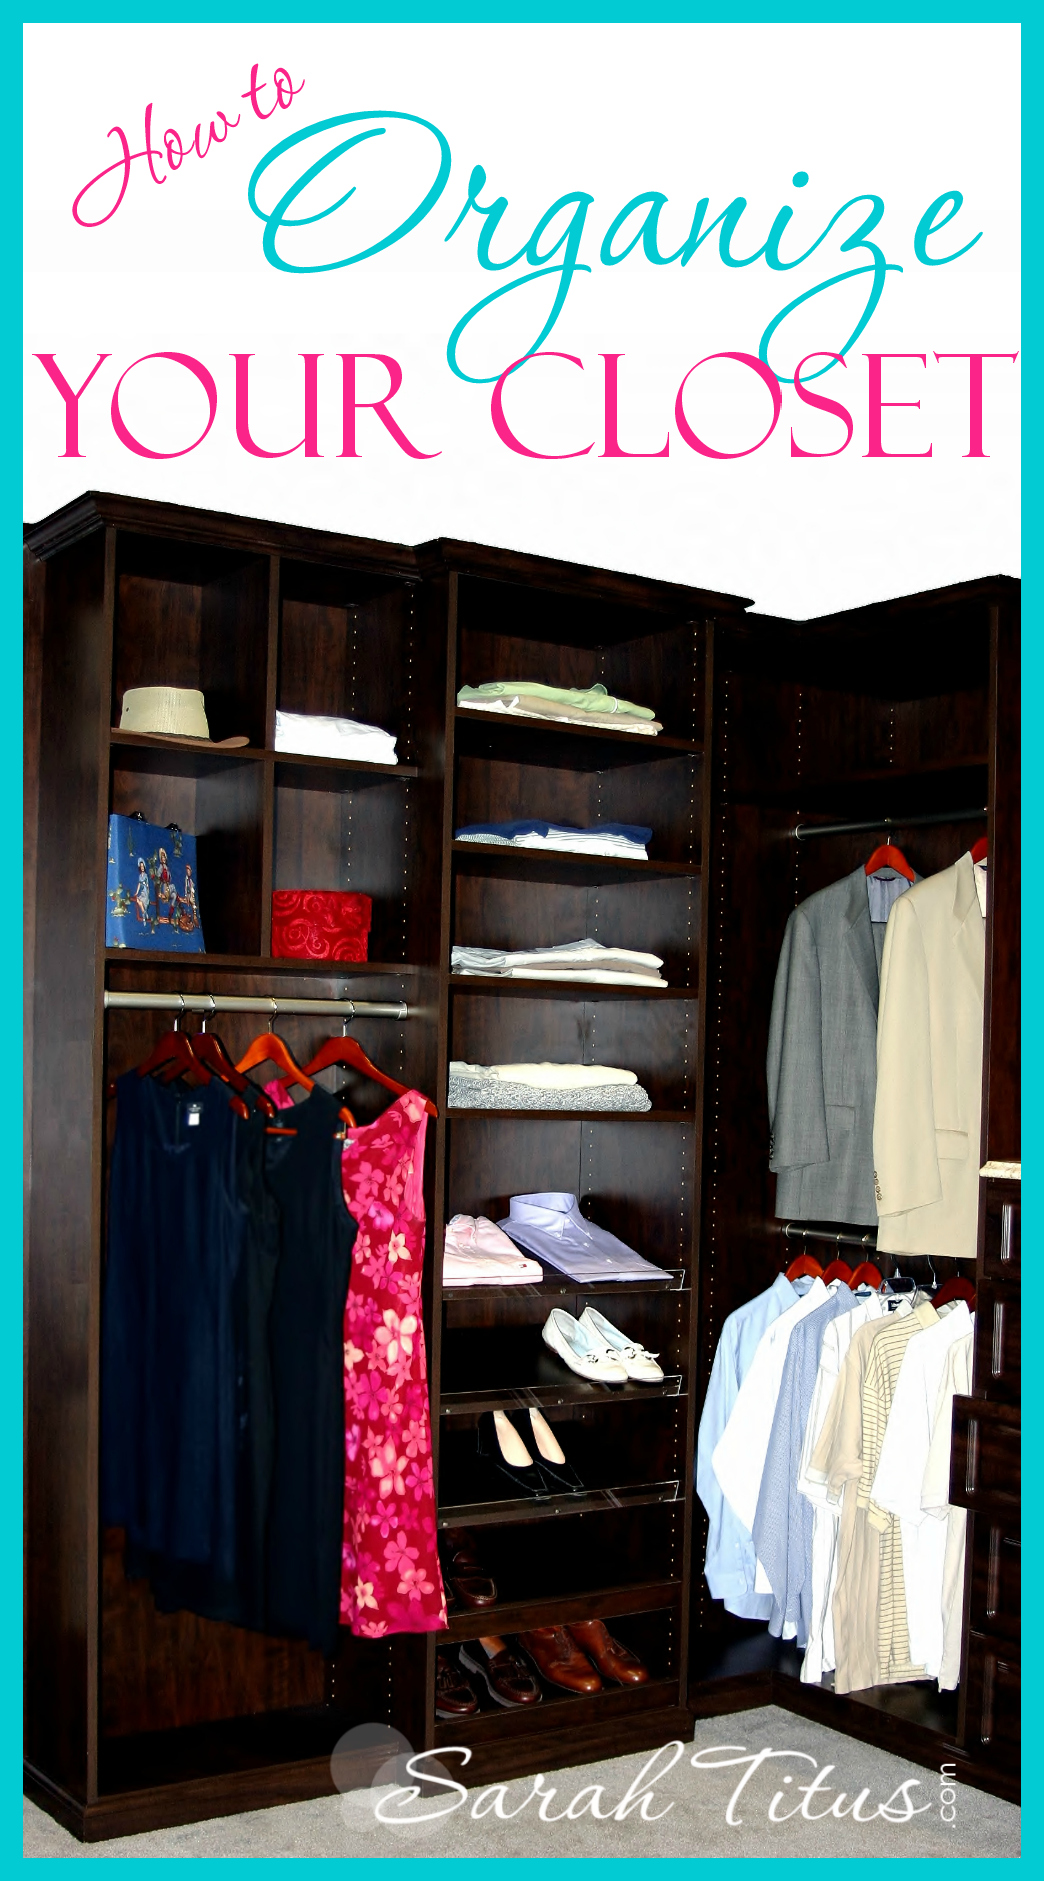 Organize Your Closet With A Capsule Wardrobe: How To Organize Your Closet